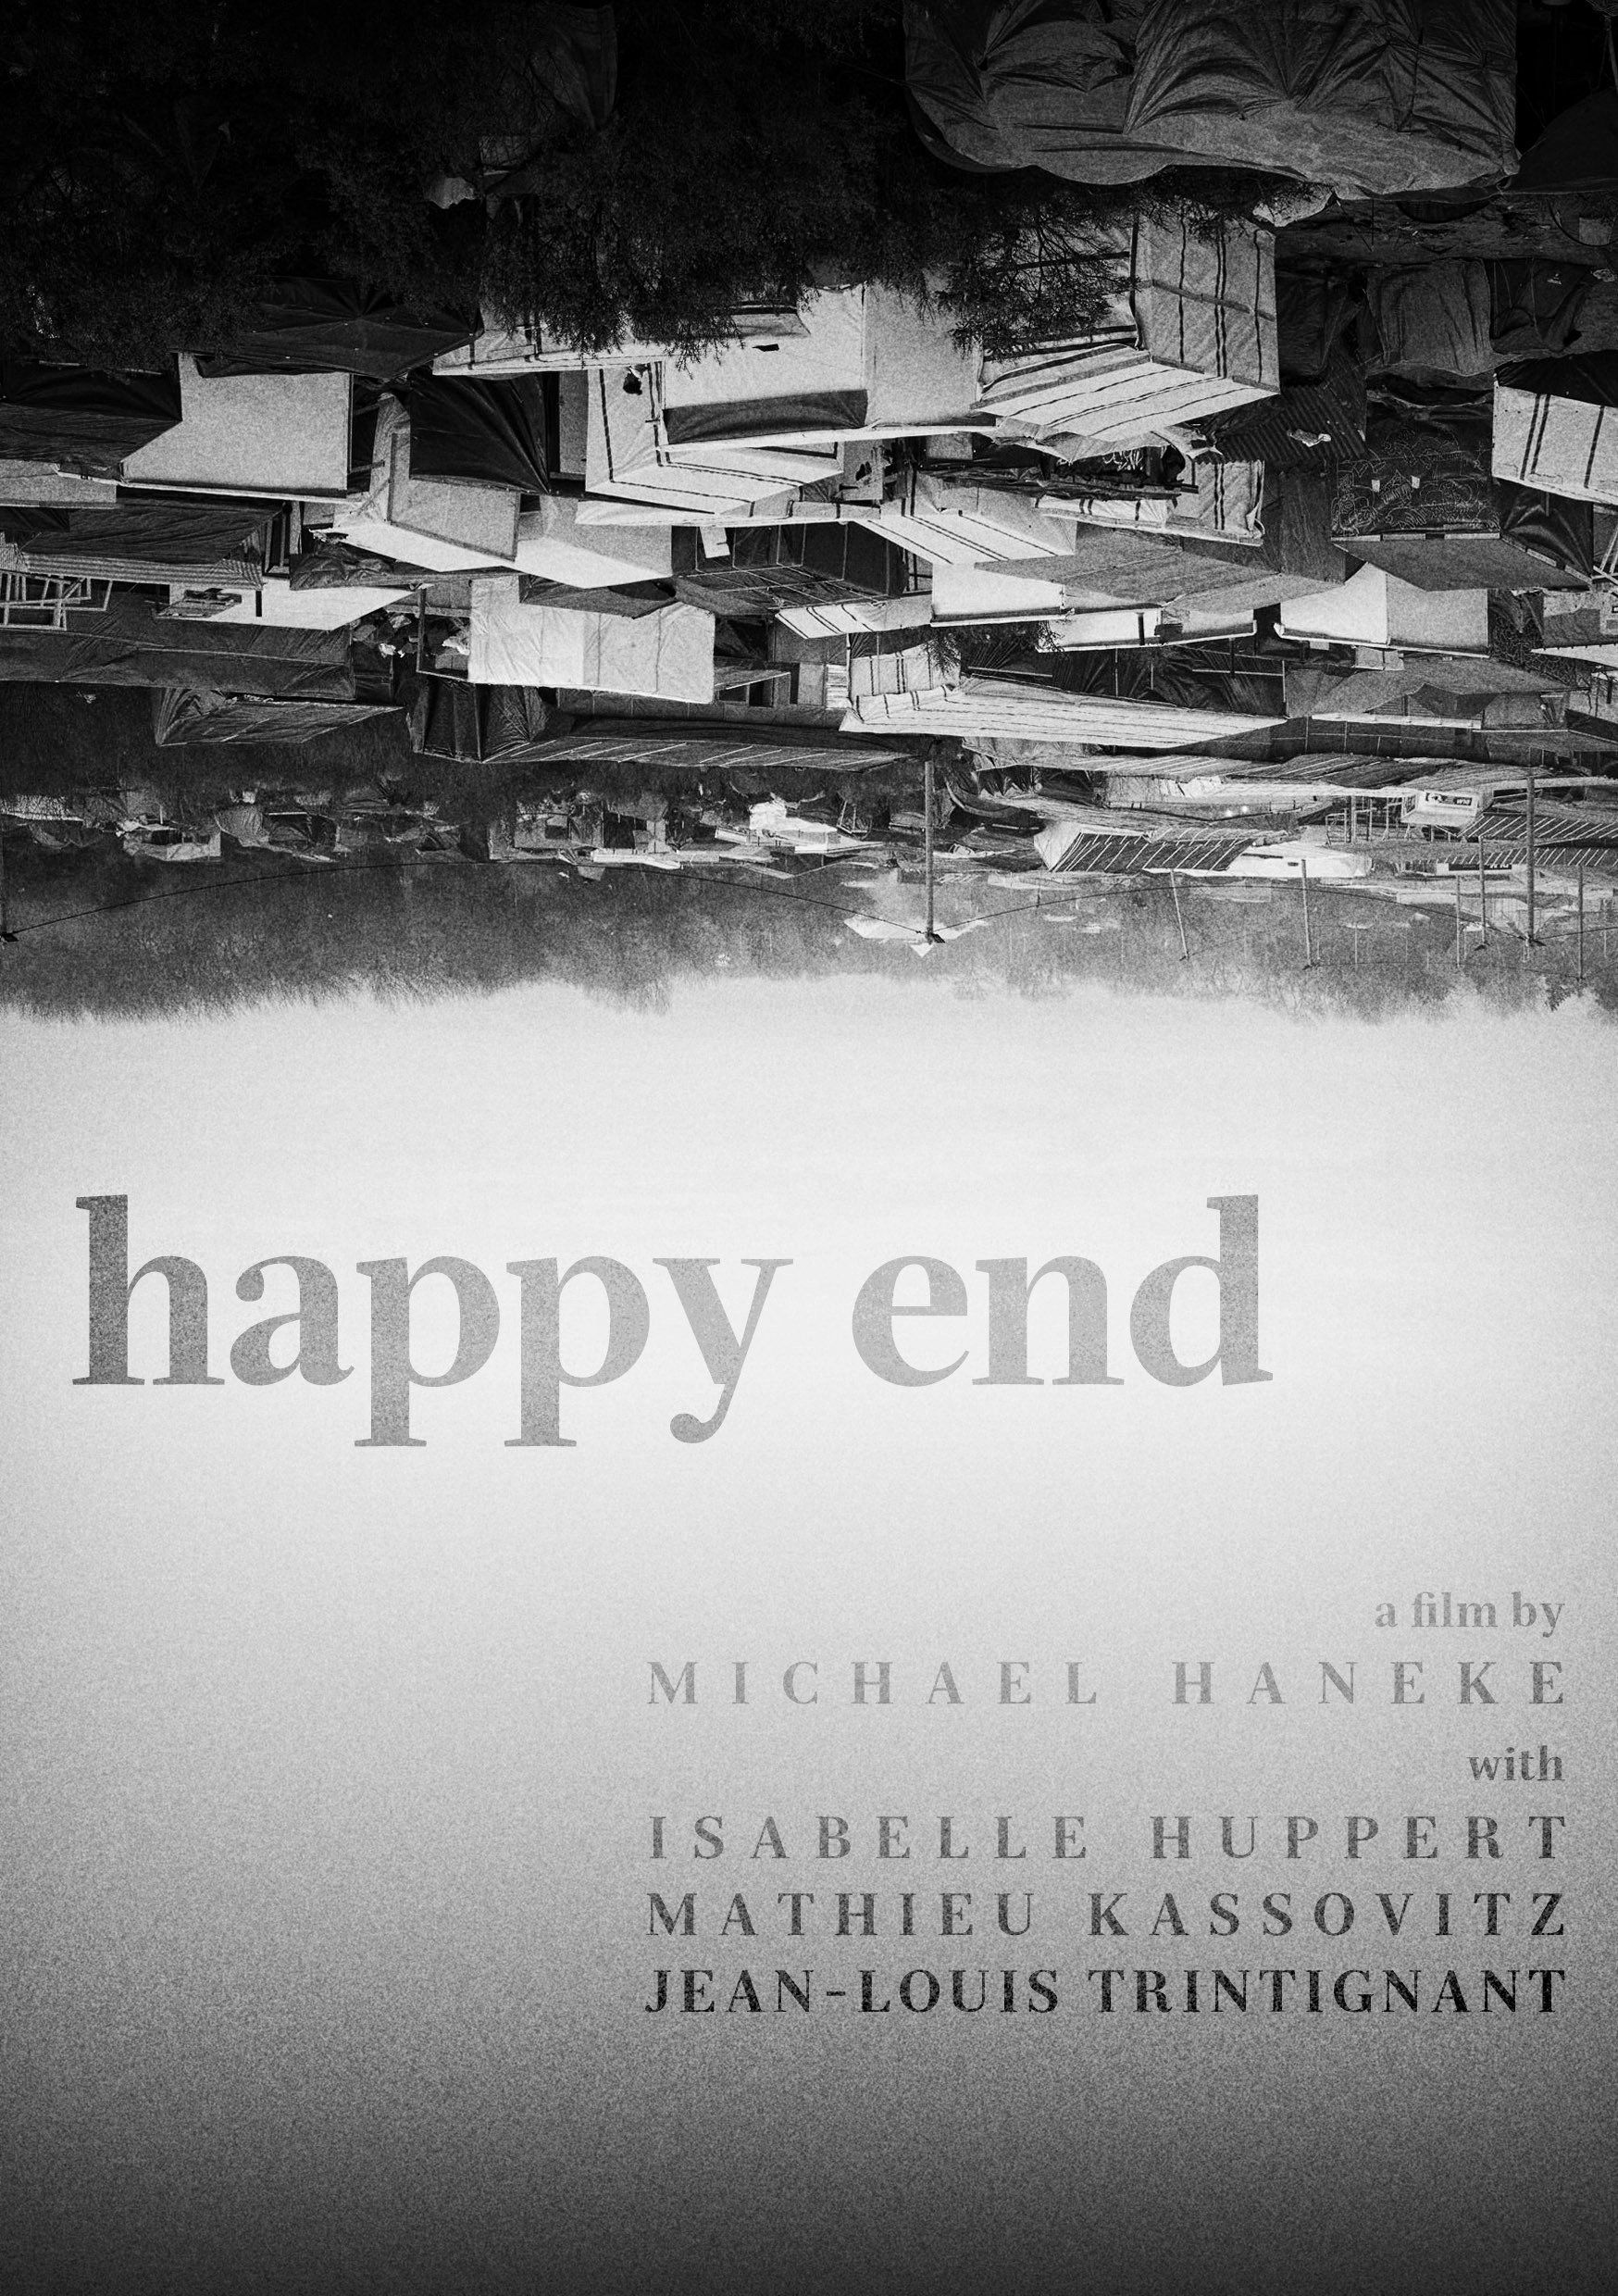 happy end film